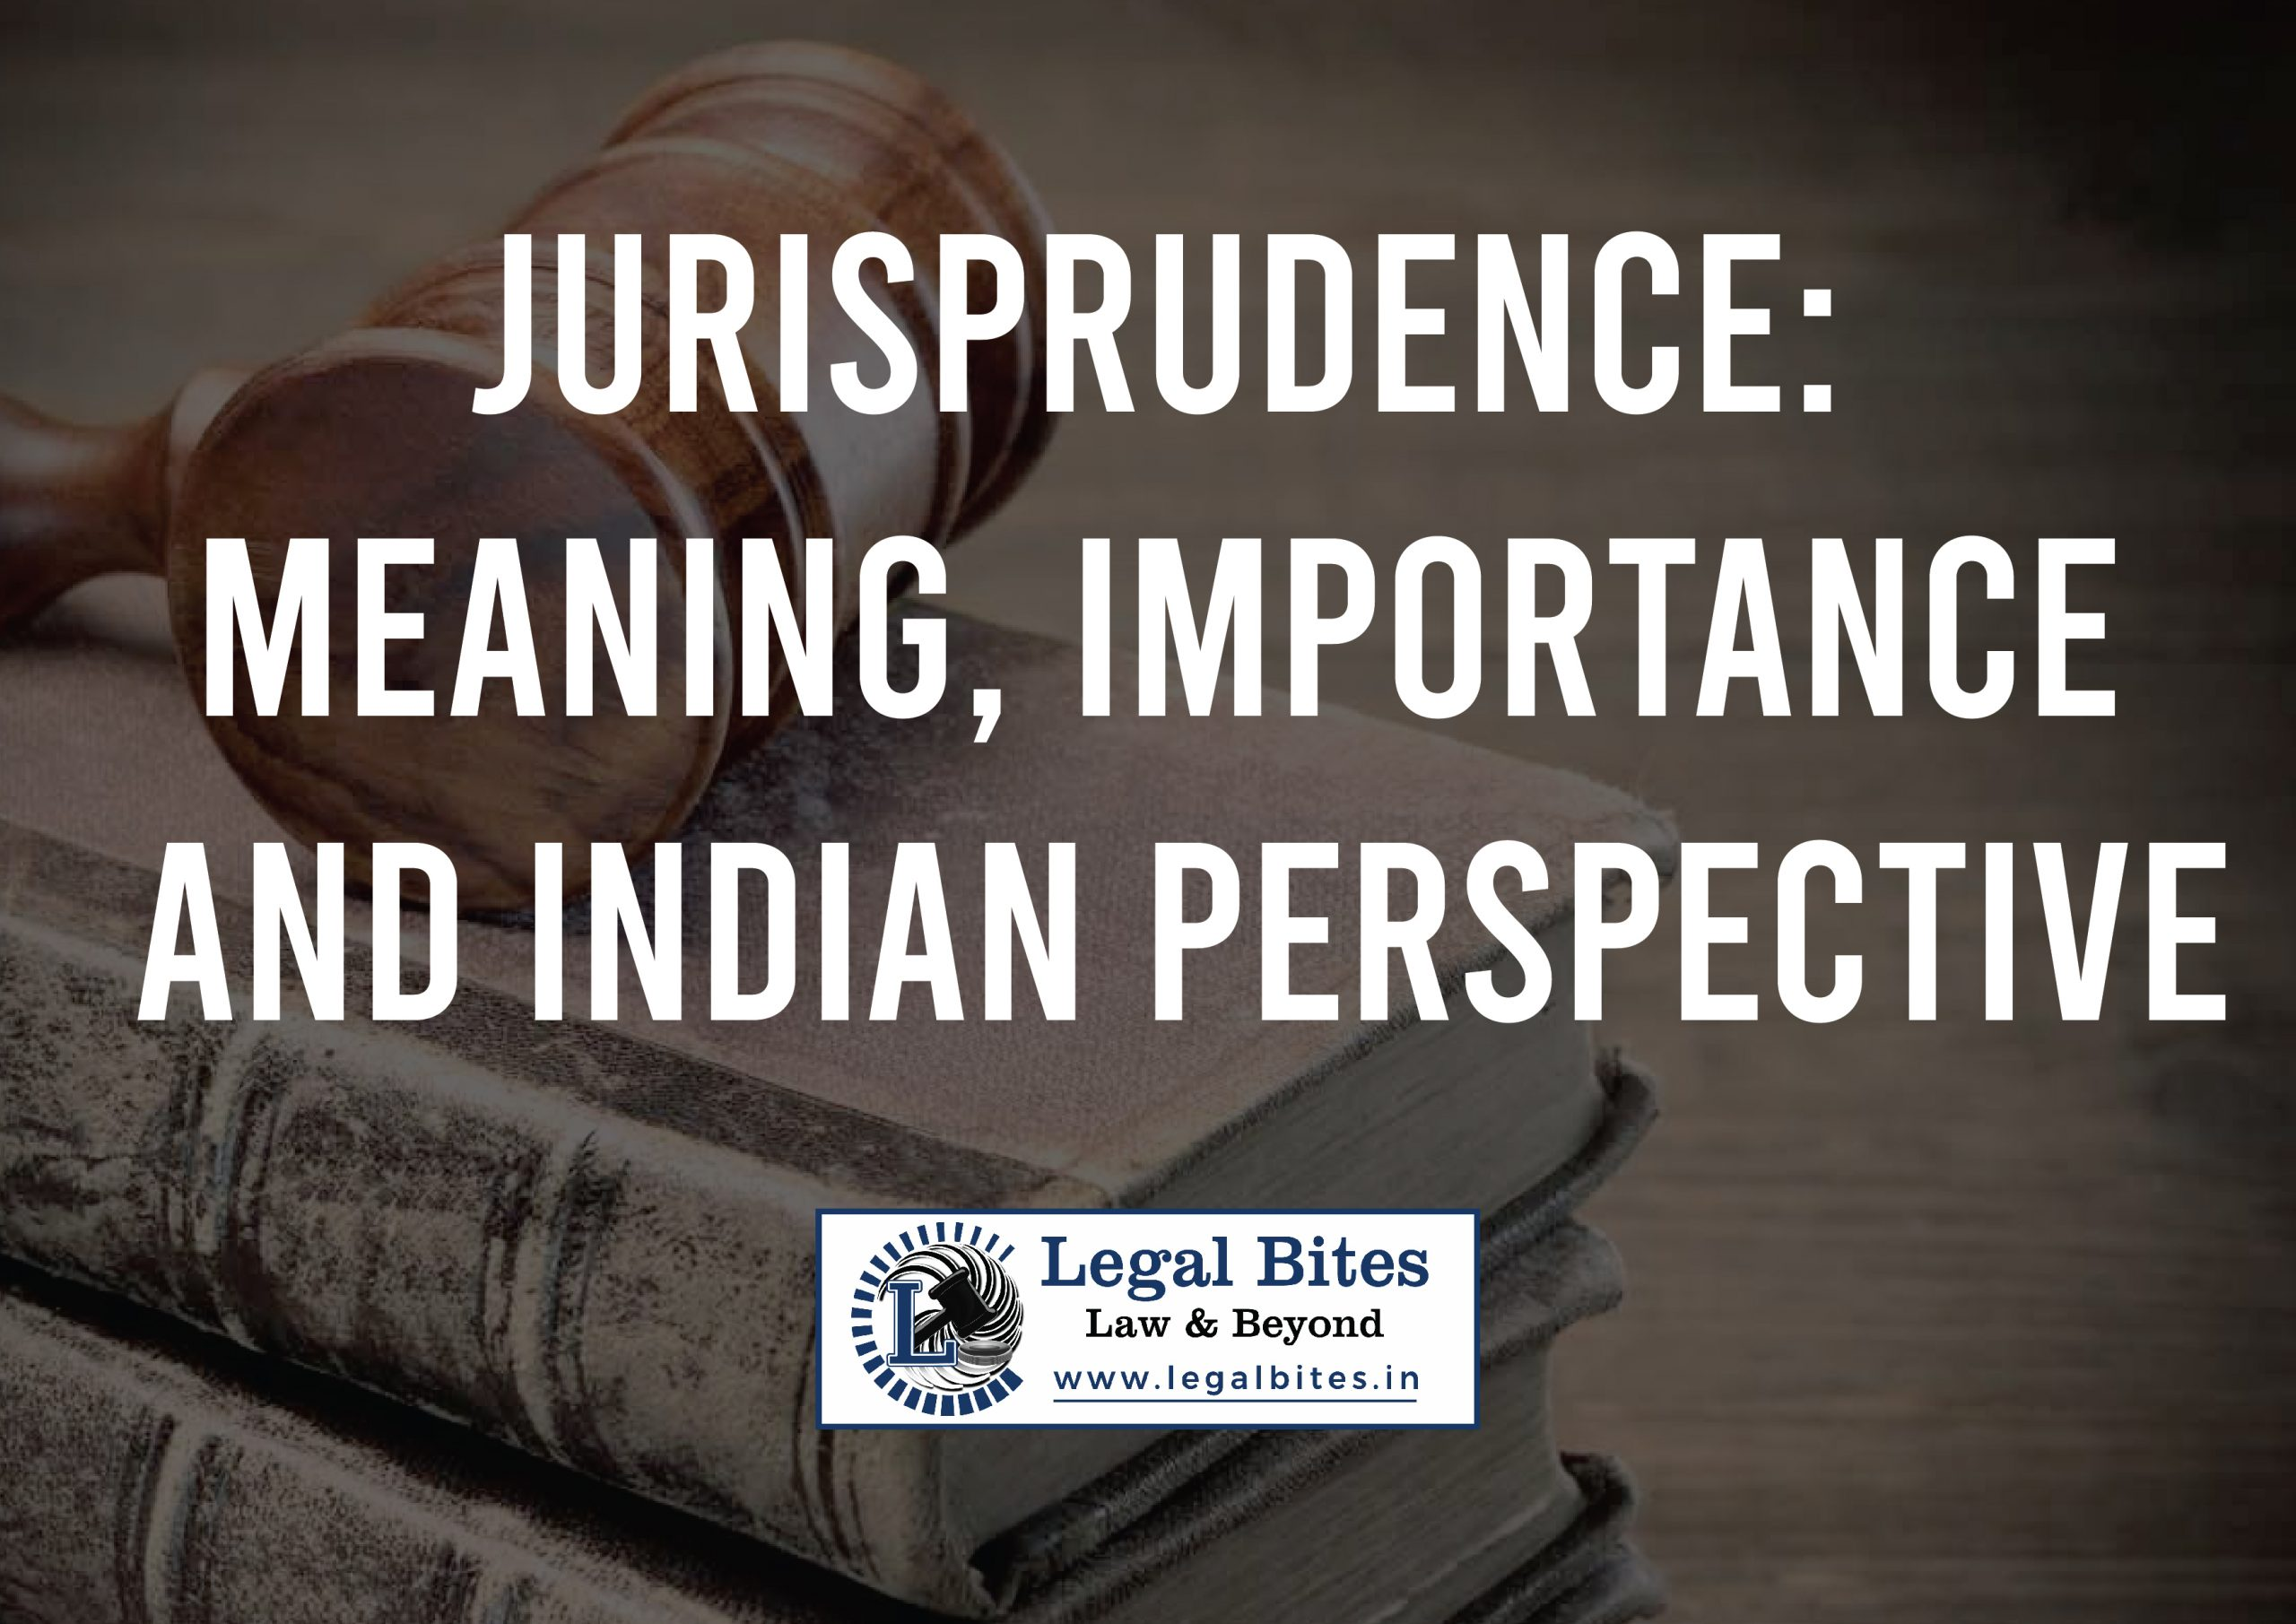 Jurisprudence Meaning, Importance and Indian Perspective